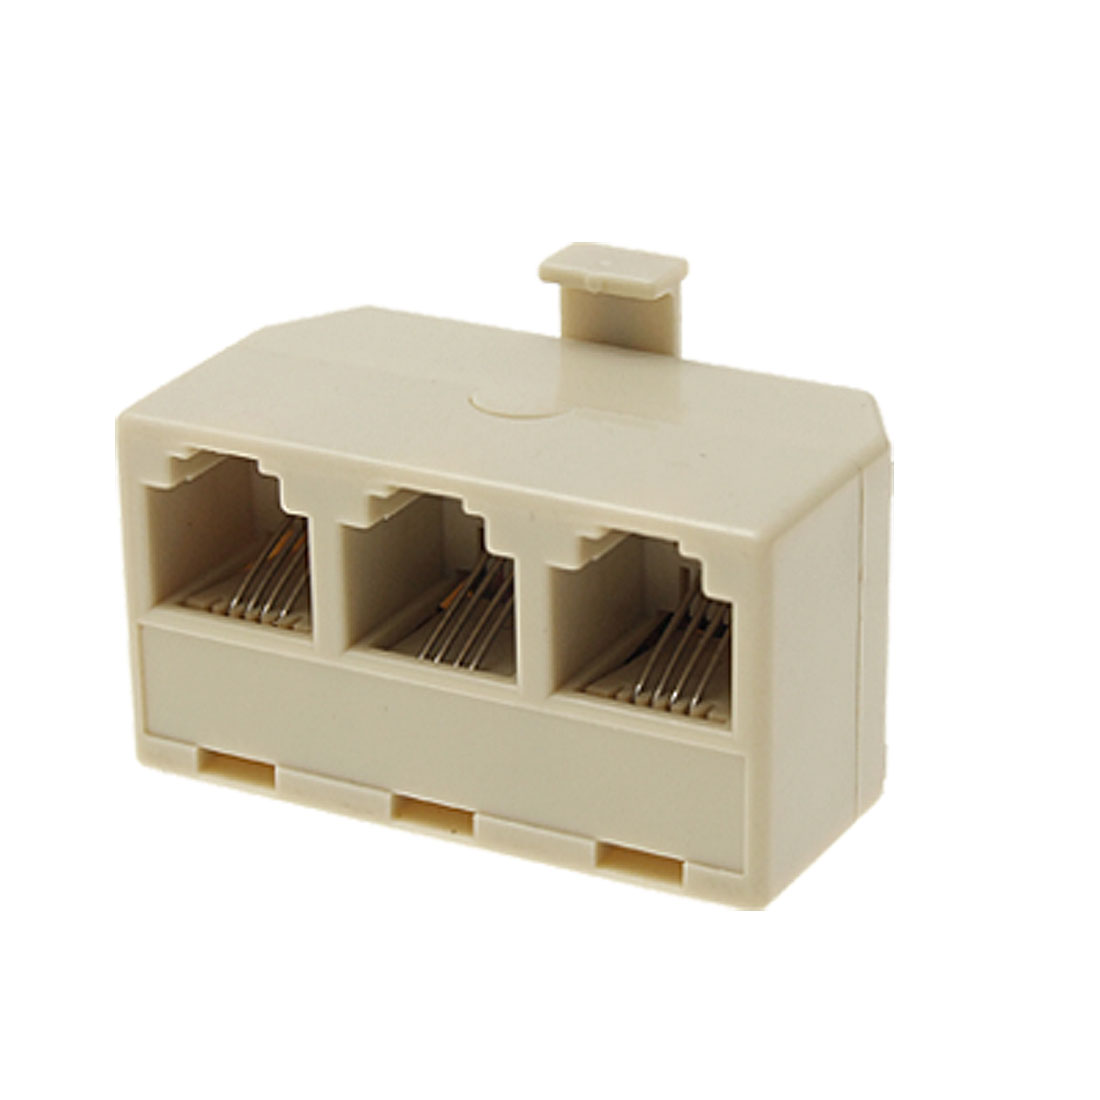 RJ11 Maleto 3 RJ11 Female Socket Adapter Converter